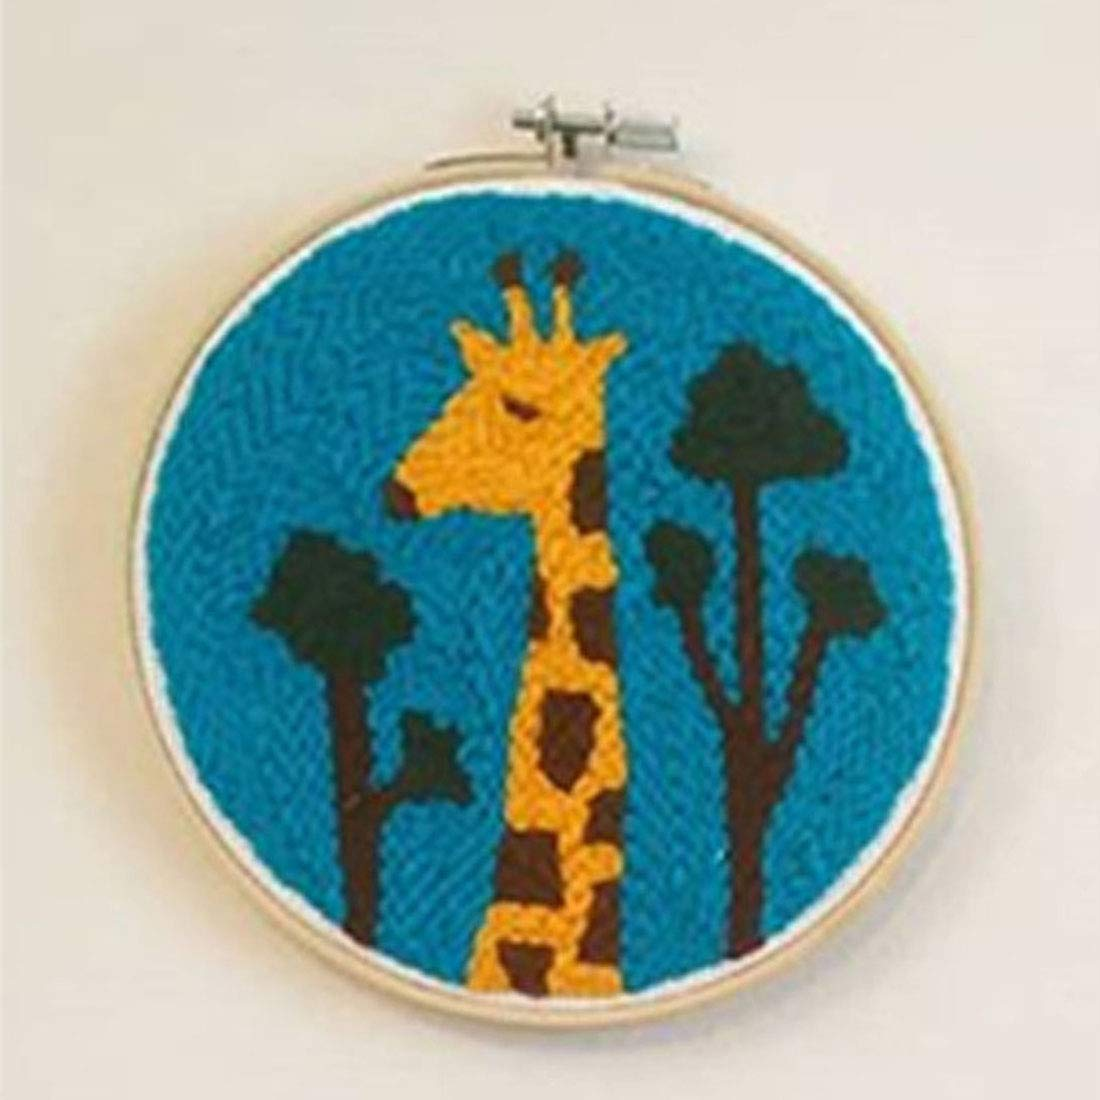 Geometry Embroidery Frame Creative Gift with 24 x 24cm Embroidery Frame Punch Needle HMANE DIY Rug Hooking Kit Handcraft Woolen Embroidery Knitting with Punch Needle